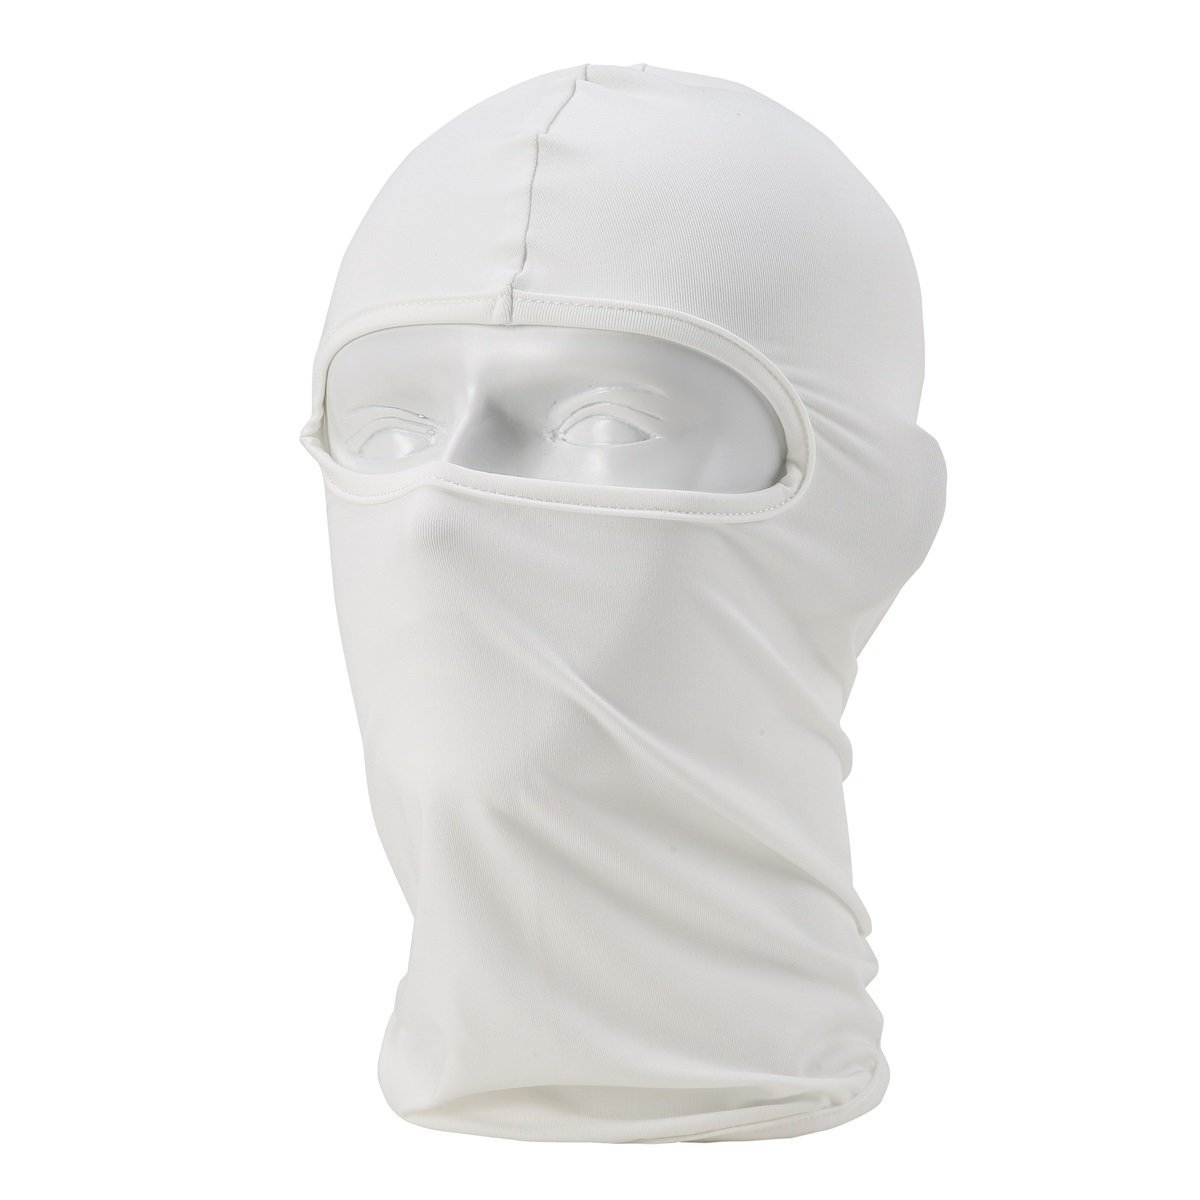 Real Outdoor Premium Full Face Ski Mask Motorcyle Ski Cycling Balaclava